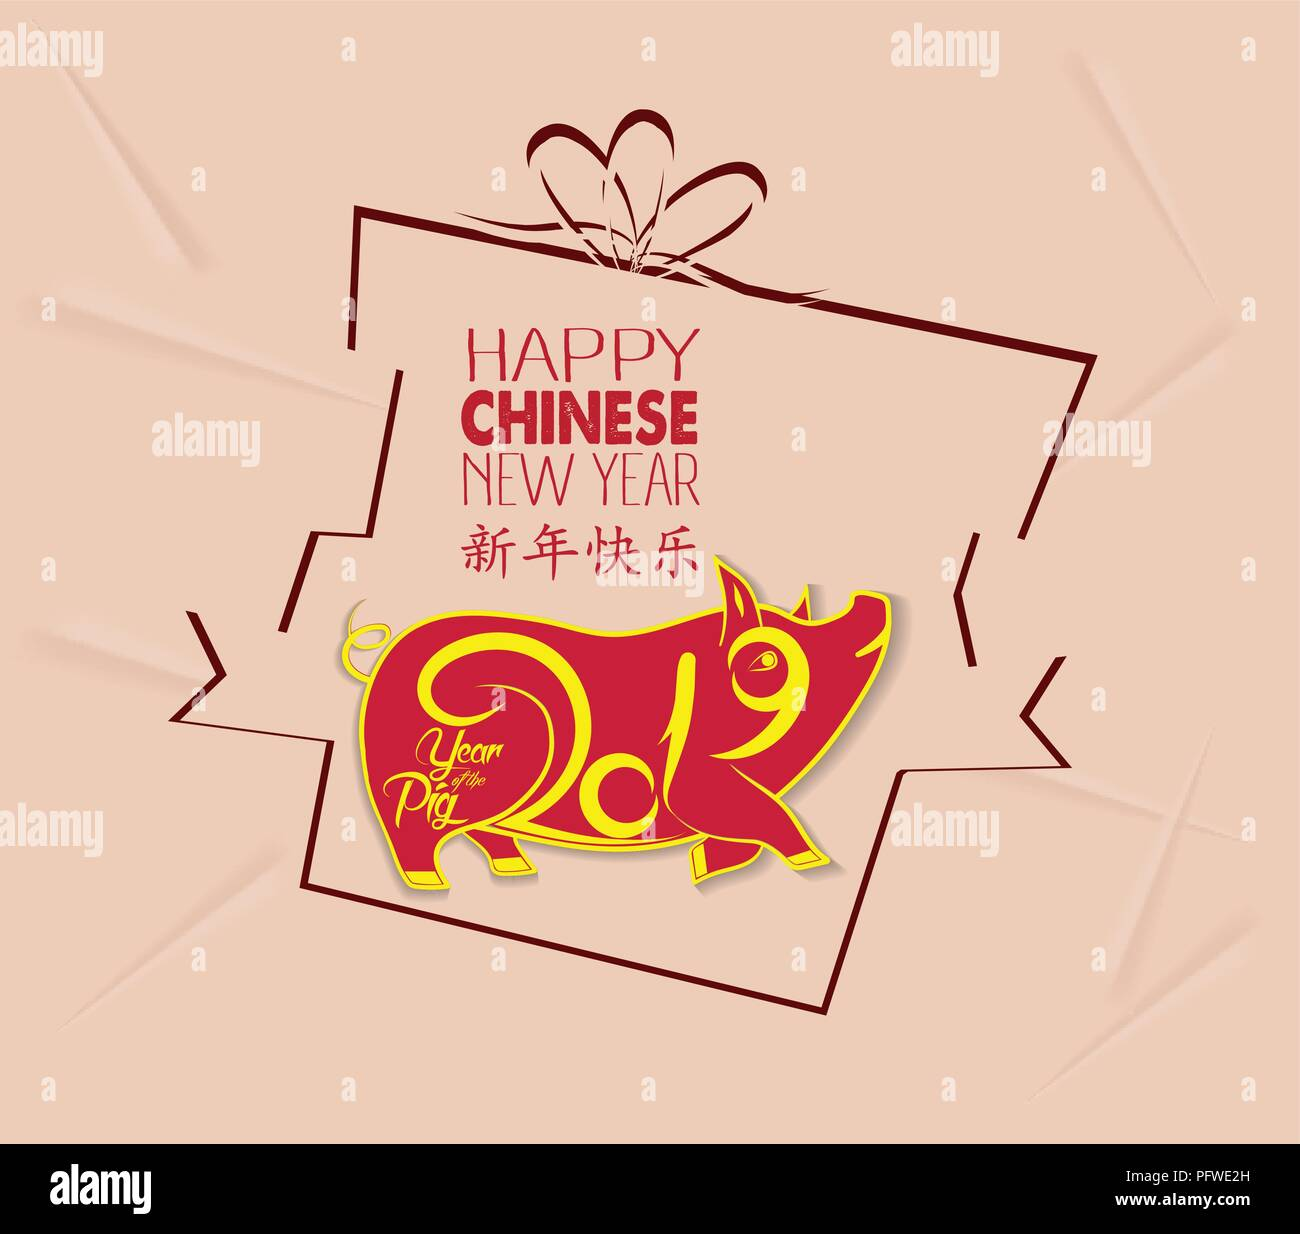 Happy Chinese New Year 2019 Of The Pig Paper Cut Style Characters Mean Wealthy Zodiac Sign For Greetings Card Flyers